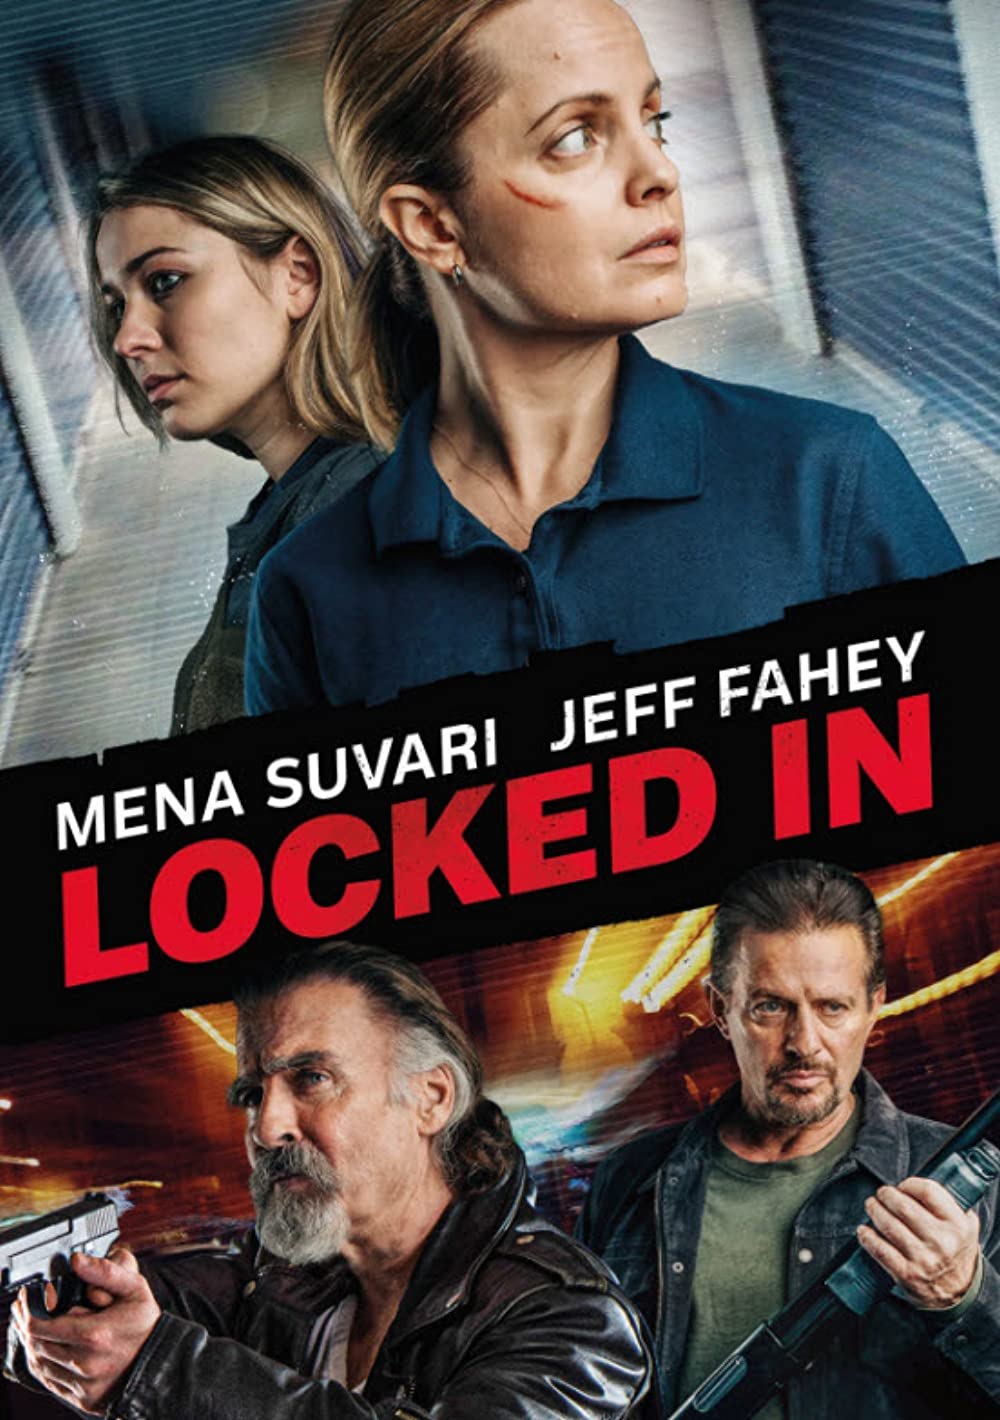 Locked In 2021 English Full Movie 1080p HDRip 1.5GB Download